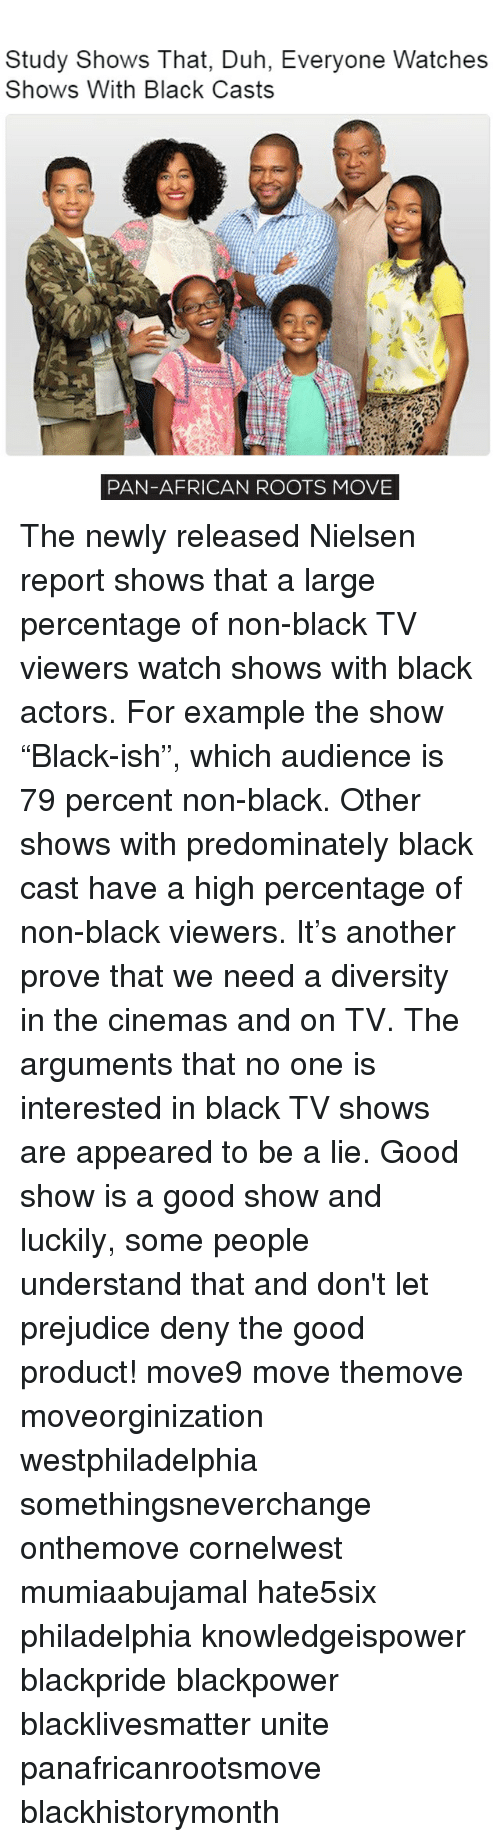 """nielsen: Study Shows That, Duh, Everyone Watches  Shows With Black Casts  PAN-AFRICAN ROOTS MOVE The newly released Nielsen report shows that a large percentage of non-black TV viewers watch shows with black actors. For example the show """"Black-ish"""", which audience is 79 percent non-black. Other shows with predominately black cast have a high percentage of non-black viewers. It's another prove that we need a diversity in the cinemas and on TV. The arguments that no one is interested in black TV shows are appeared to be a lie. Good show is a good show and luckily, some people understand that and don't let prejudice deny the good product! move9 move themove moveorginization westphiladelphia somethingsneverchange onthemove cornelwest mumiaabujamal hate5six philadelphia knowledgeispower blackpride blackpower blacklivesmatter unite panafricanrootsmove blackhistorymonth"""